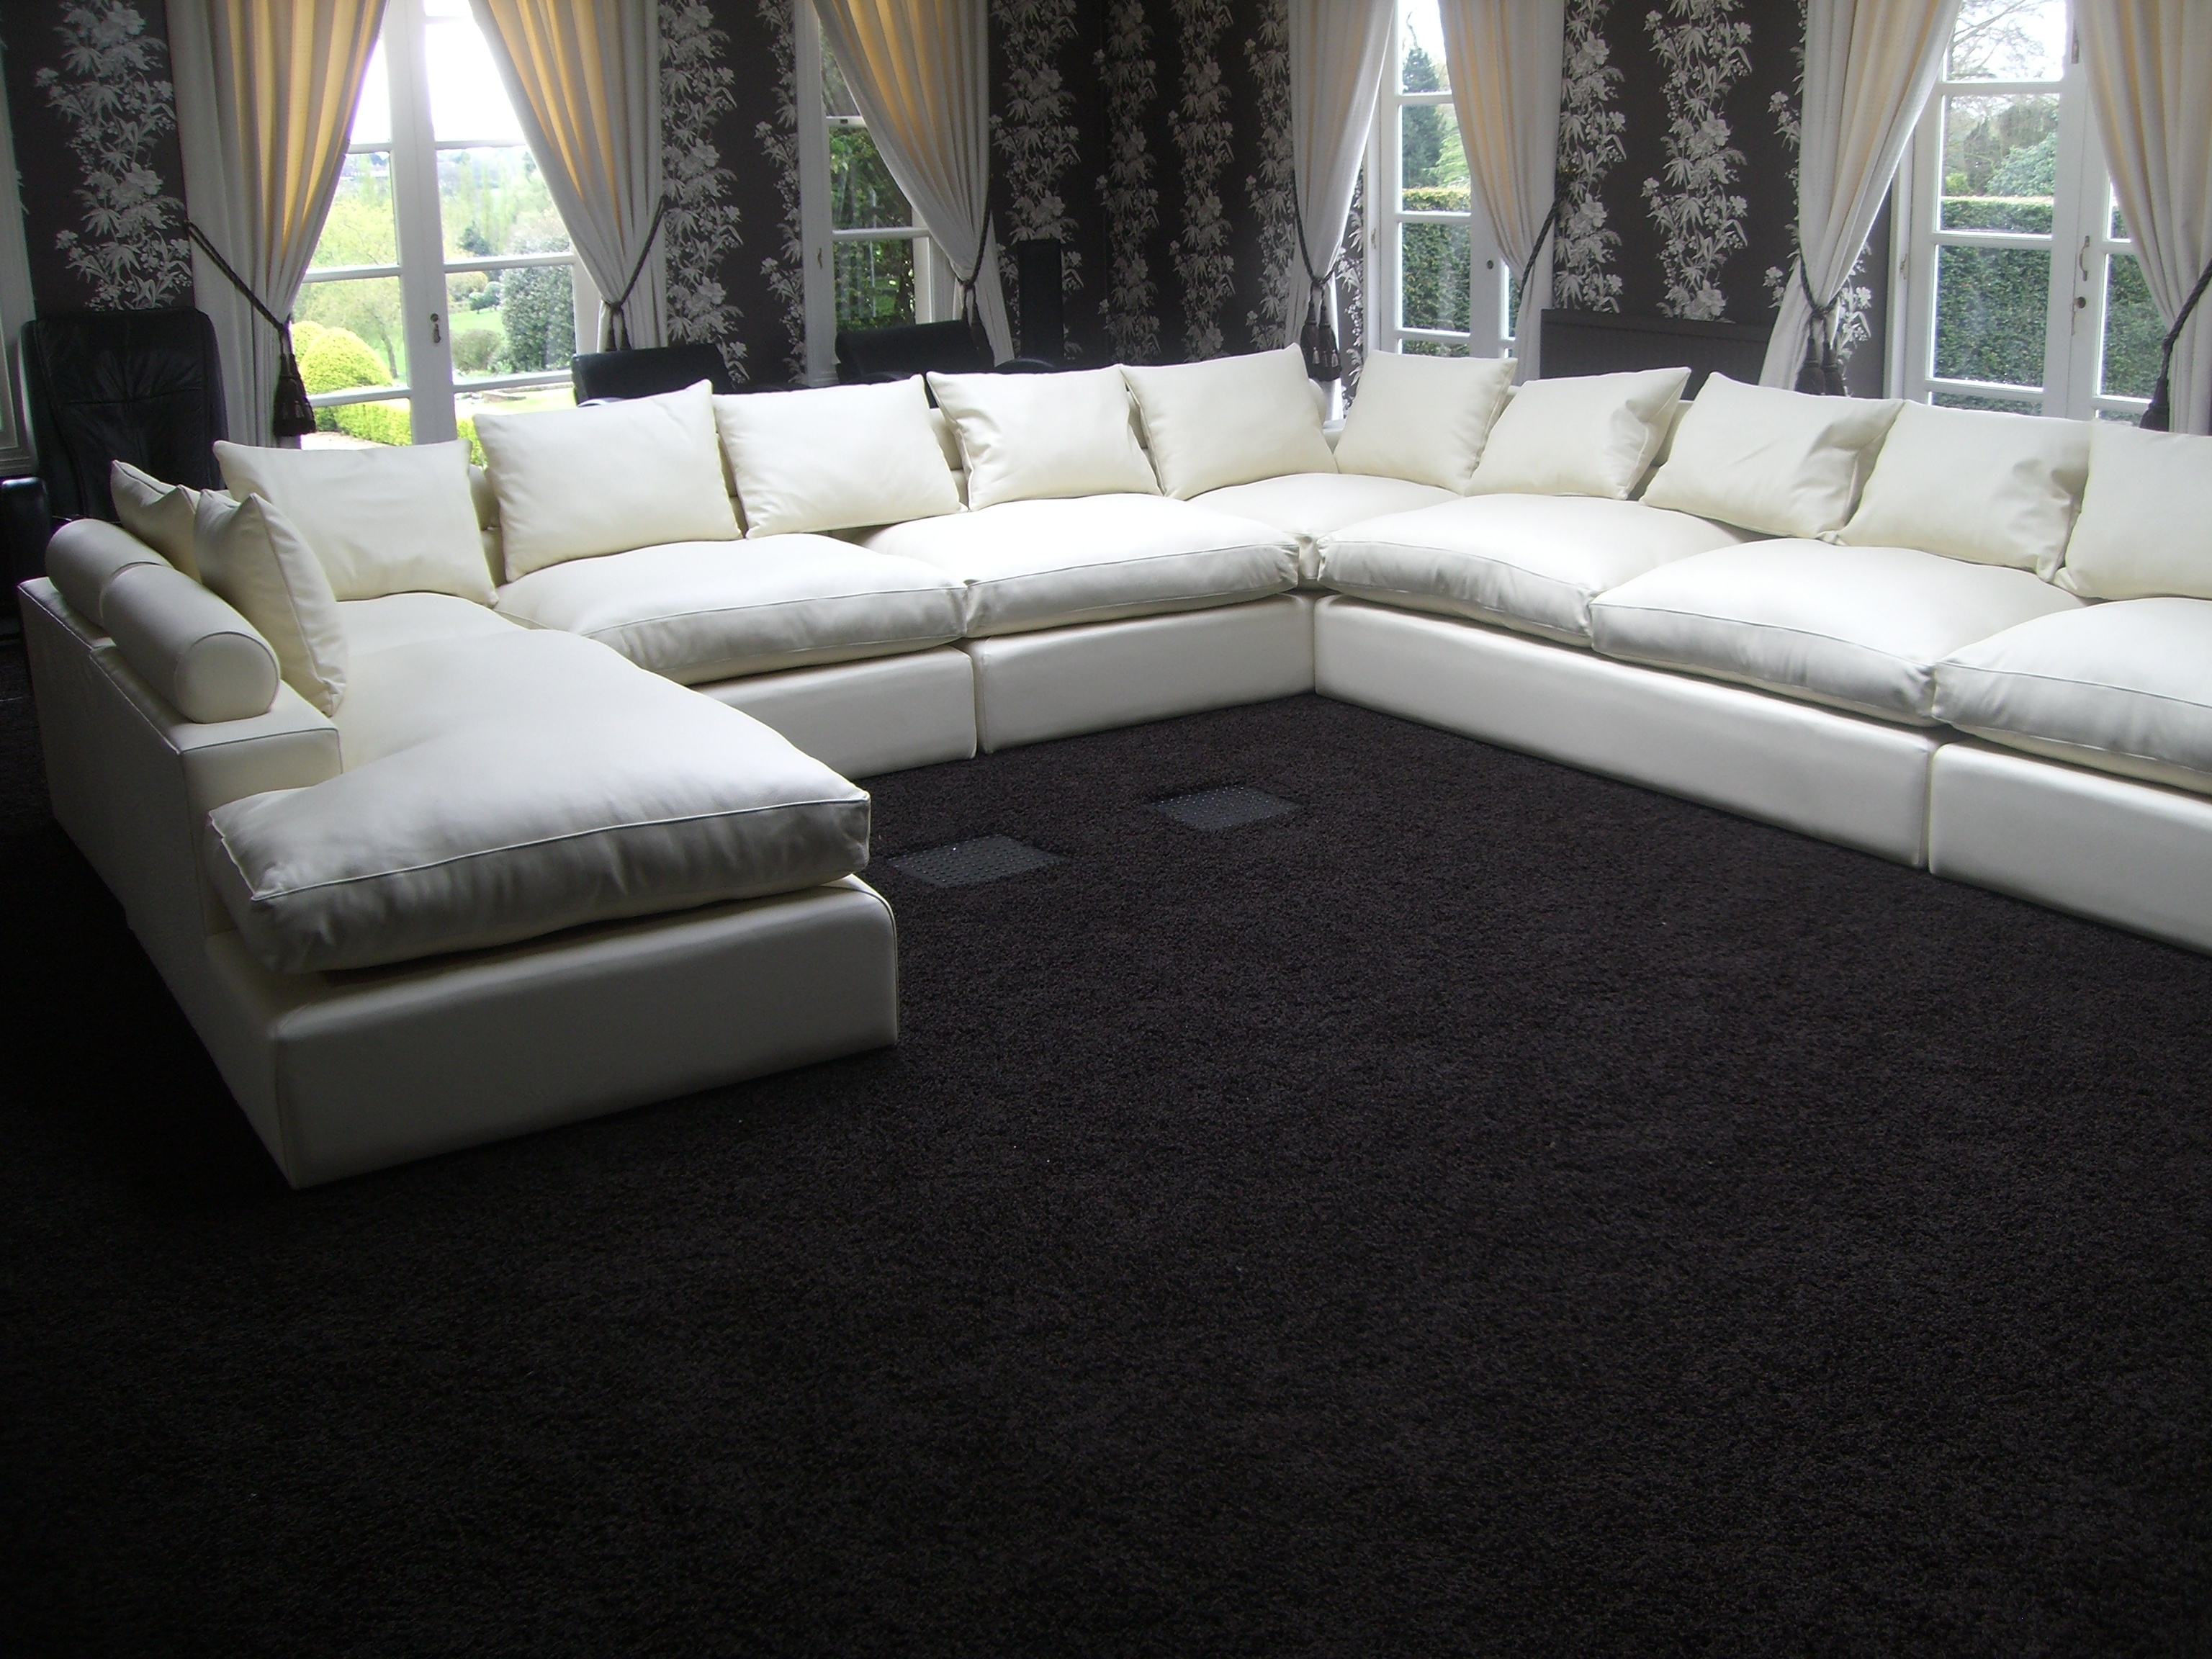 Most Popular Large U Shaped Sofa – Fjellkjeden With Huge U Shaped Sectionals (View 7 of 20)